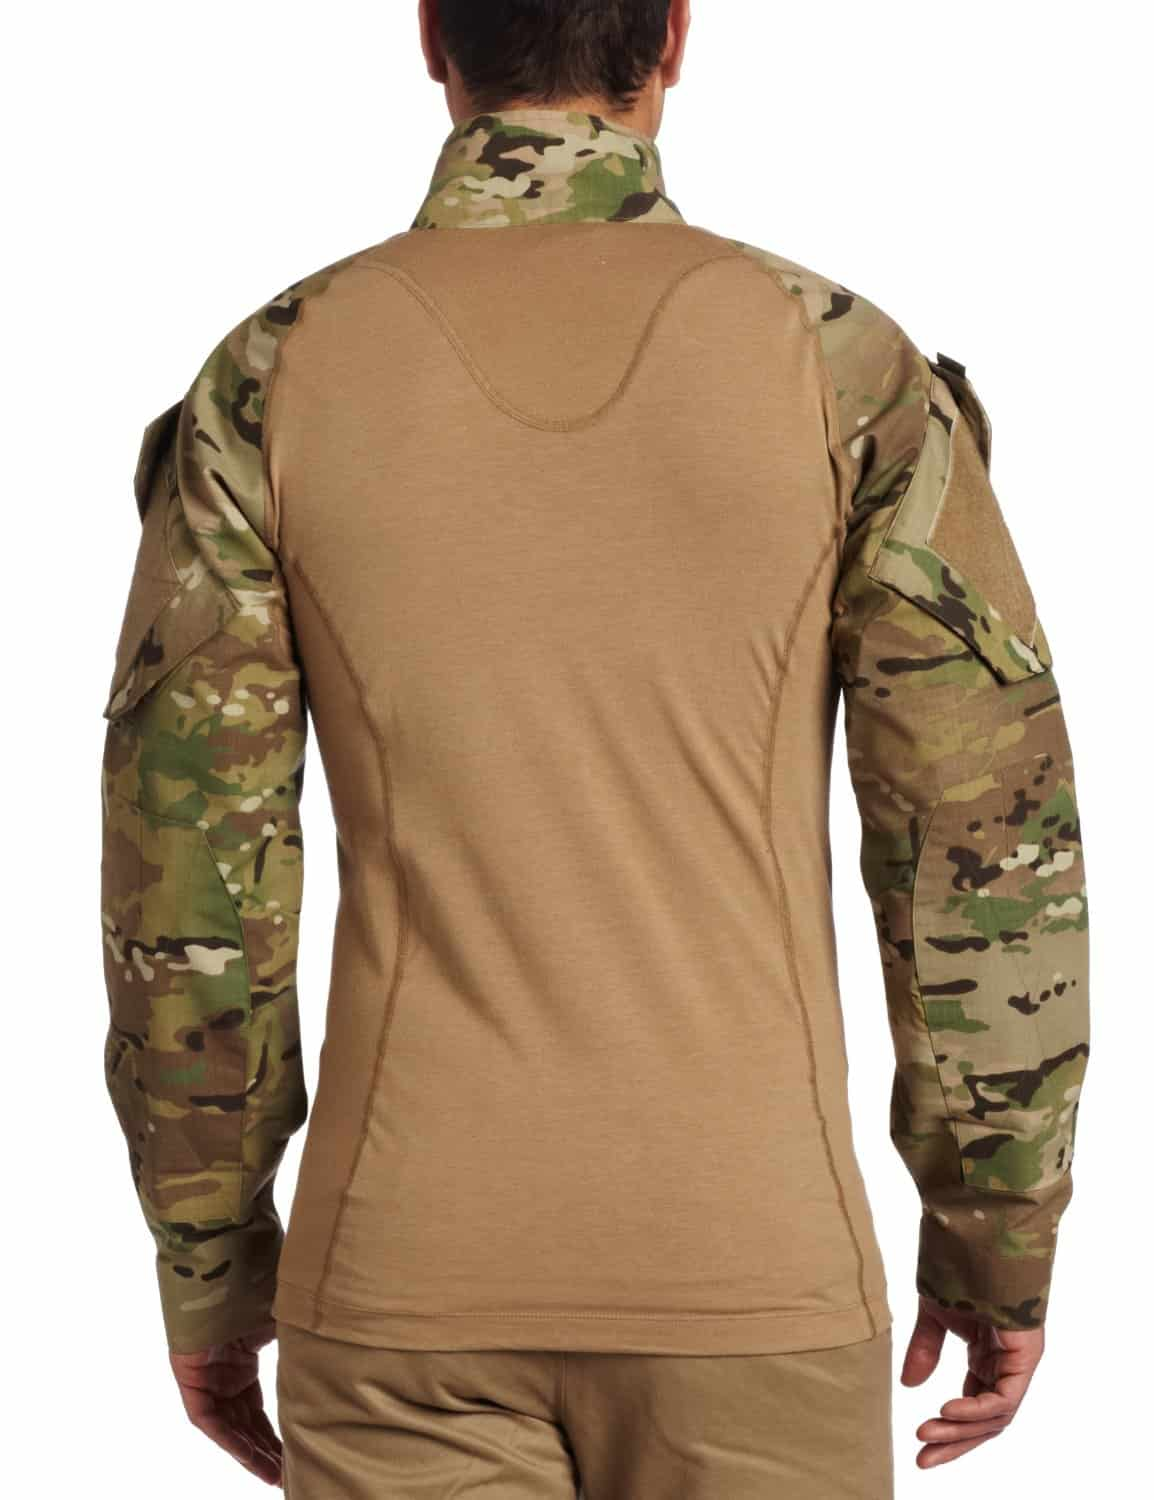 Tactical Long Sleeve Multicam Tdu Rapid Assault Shirt